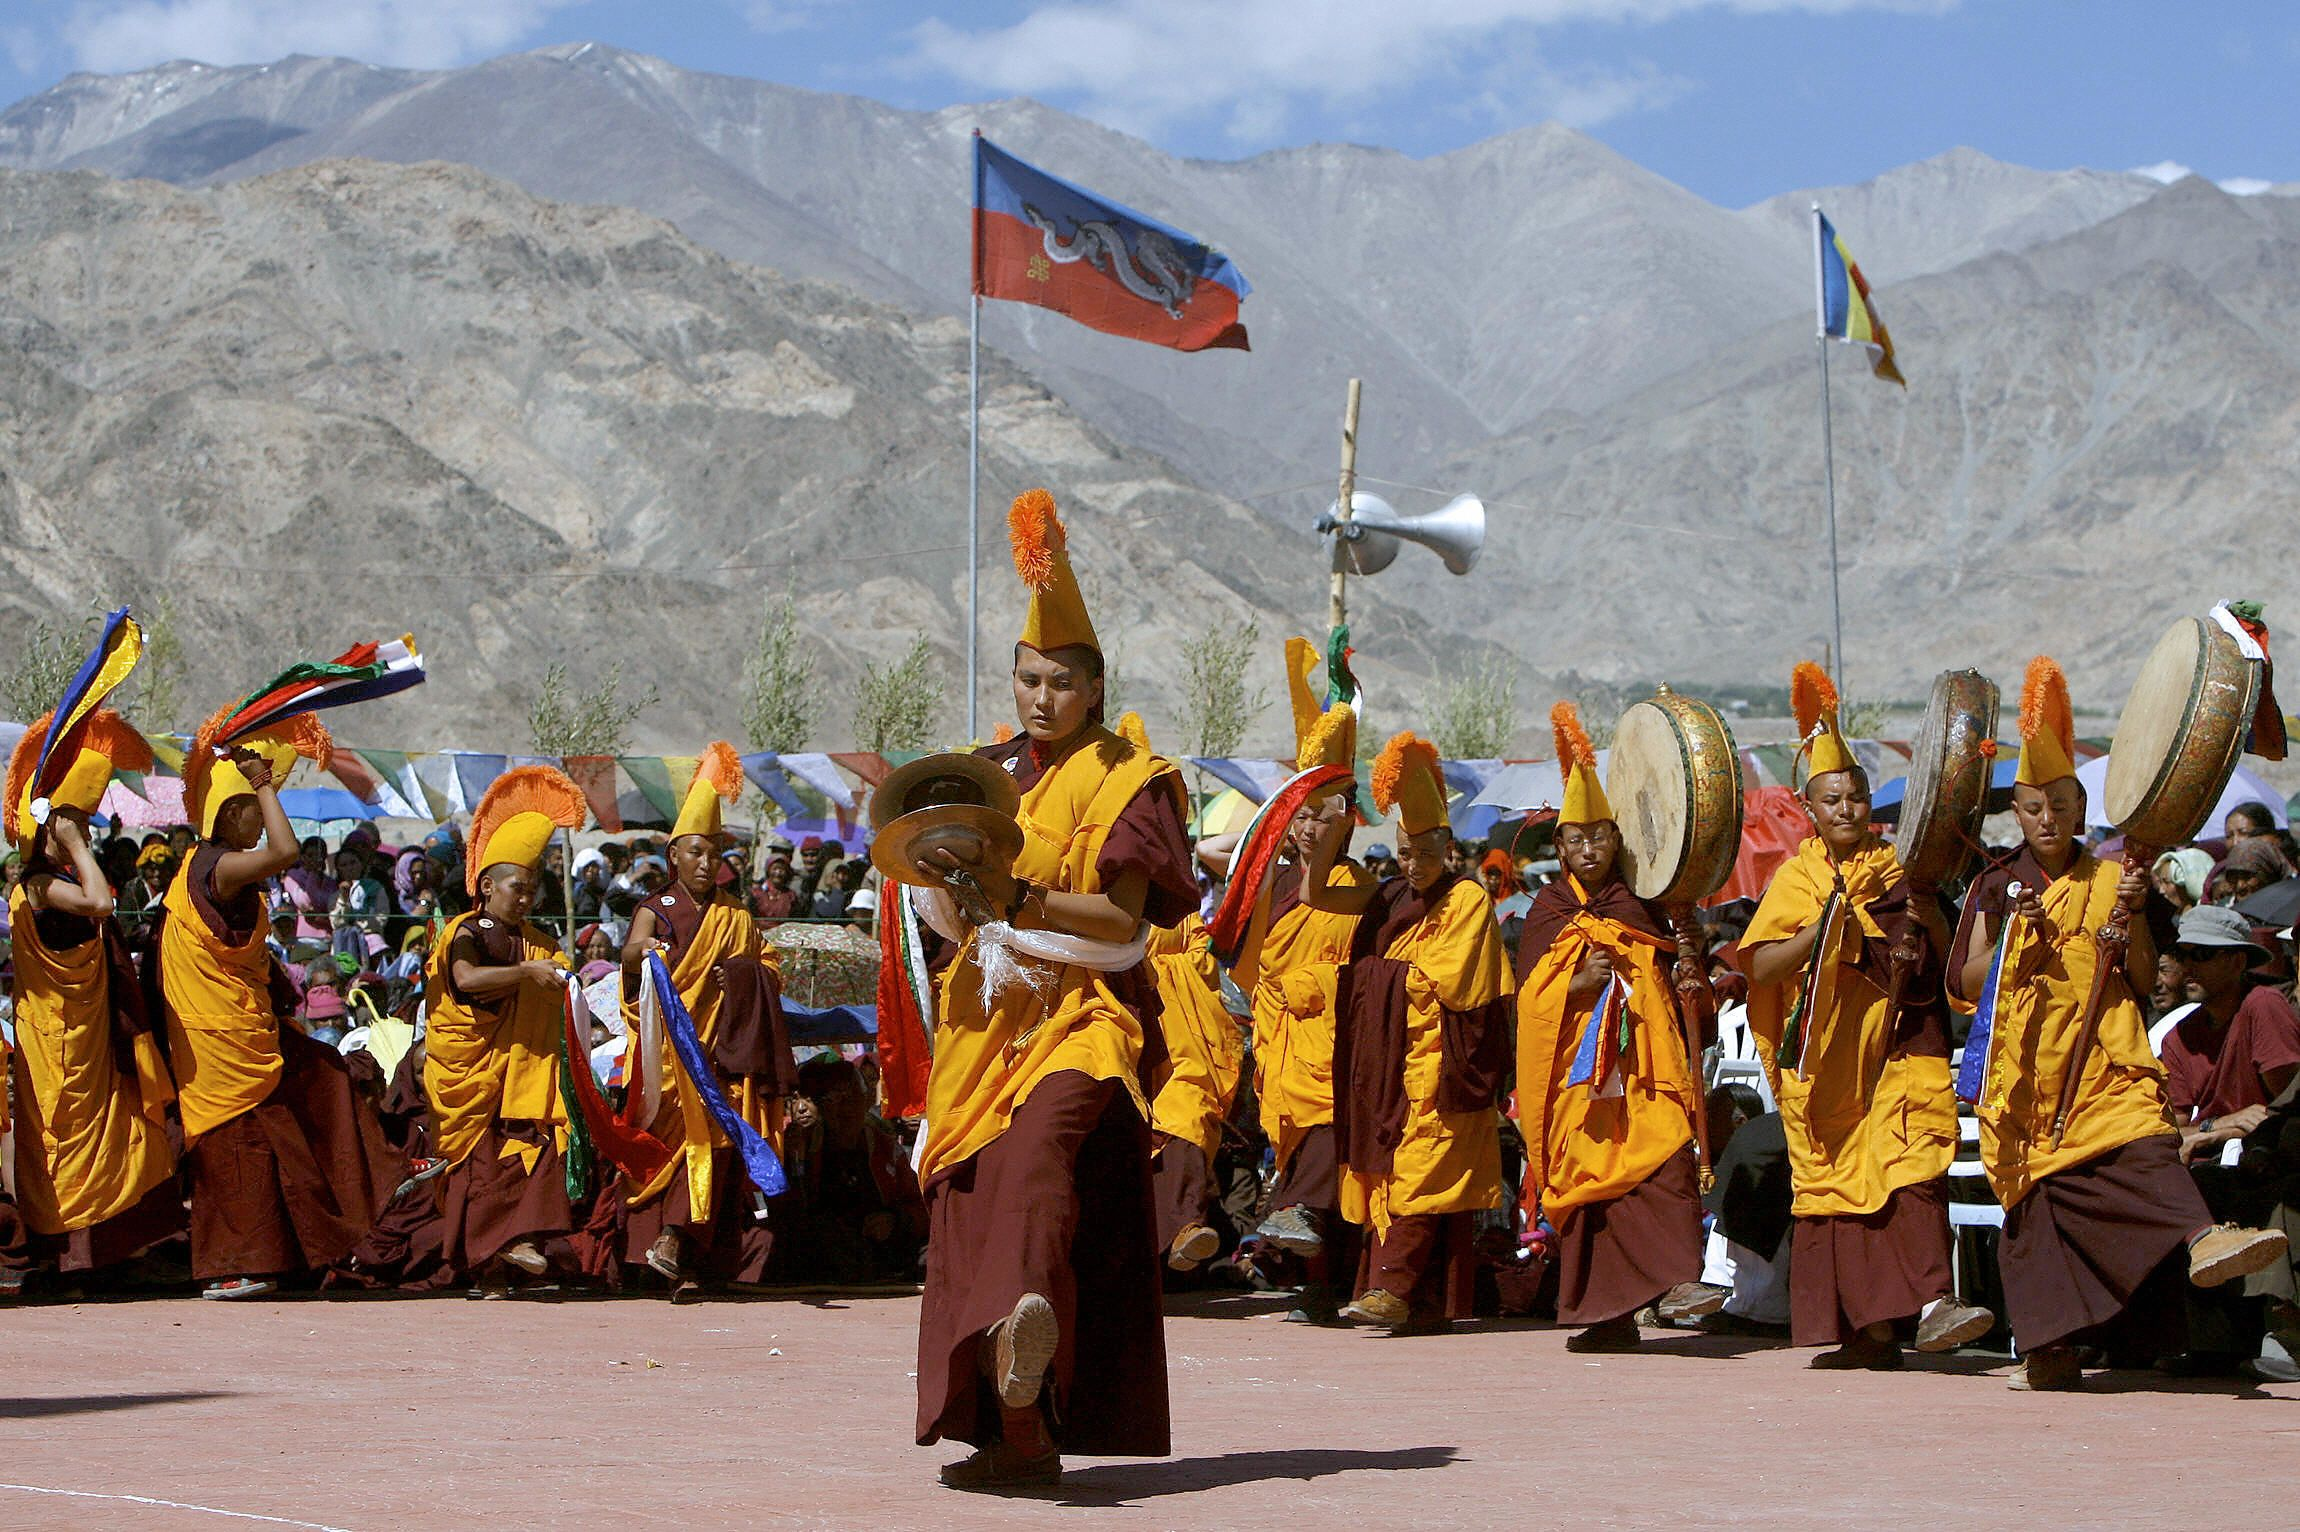 Shey, INDIA: Buddhist nuns perform a rarely performed religious dance called Nga Chham, outside The Naro Photang Puspahari temple in Shey, Some 15 kilometers south of Leh, 19 July 2007. (MANPREET ROMANA/AFP via Getty Images)